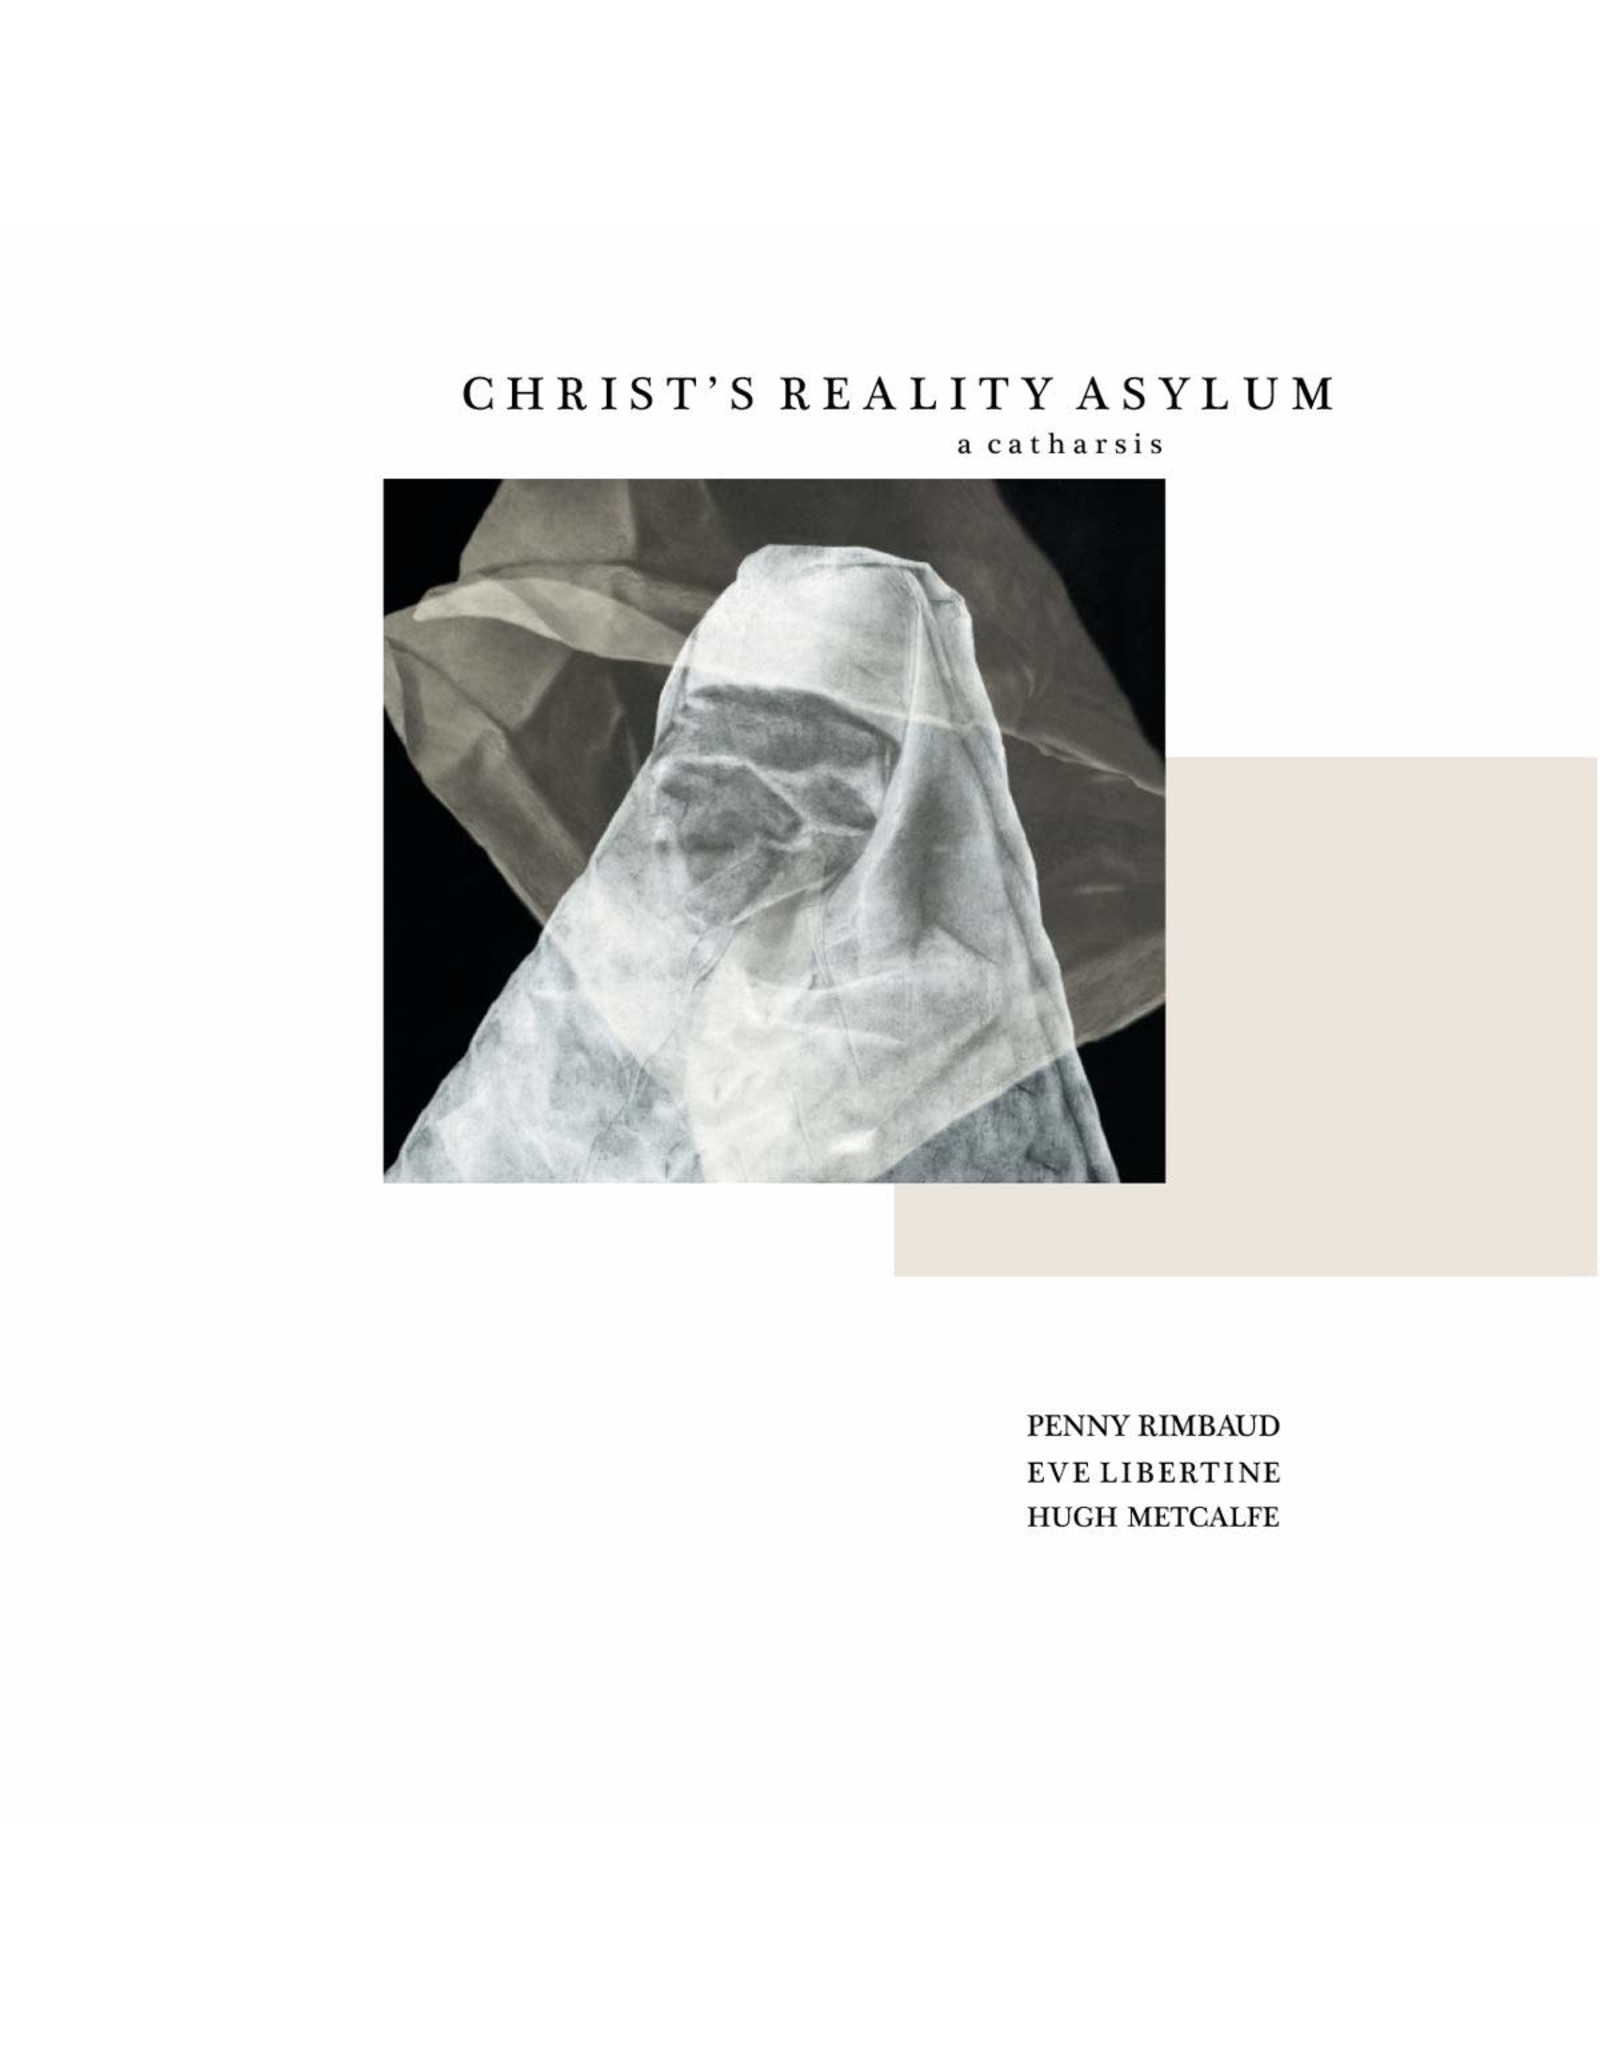 New Vinyl Penny Rimbaud - Christ's Reality Asylum And Les Pommes De Printemps LP